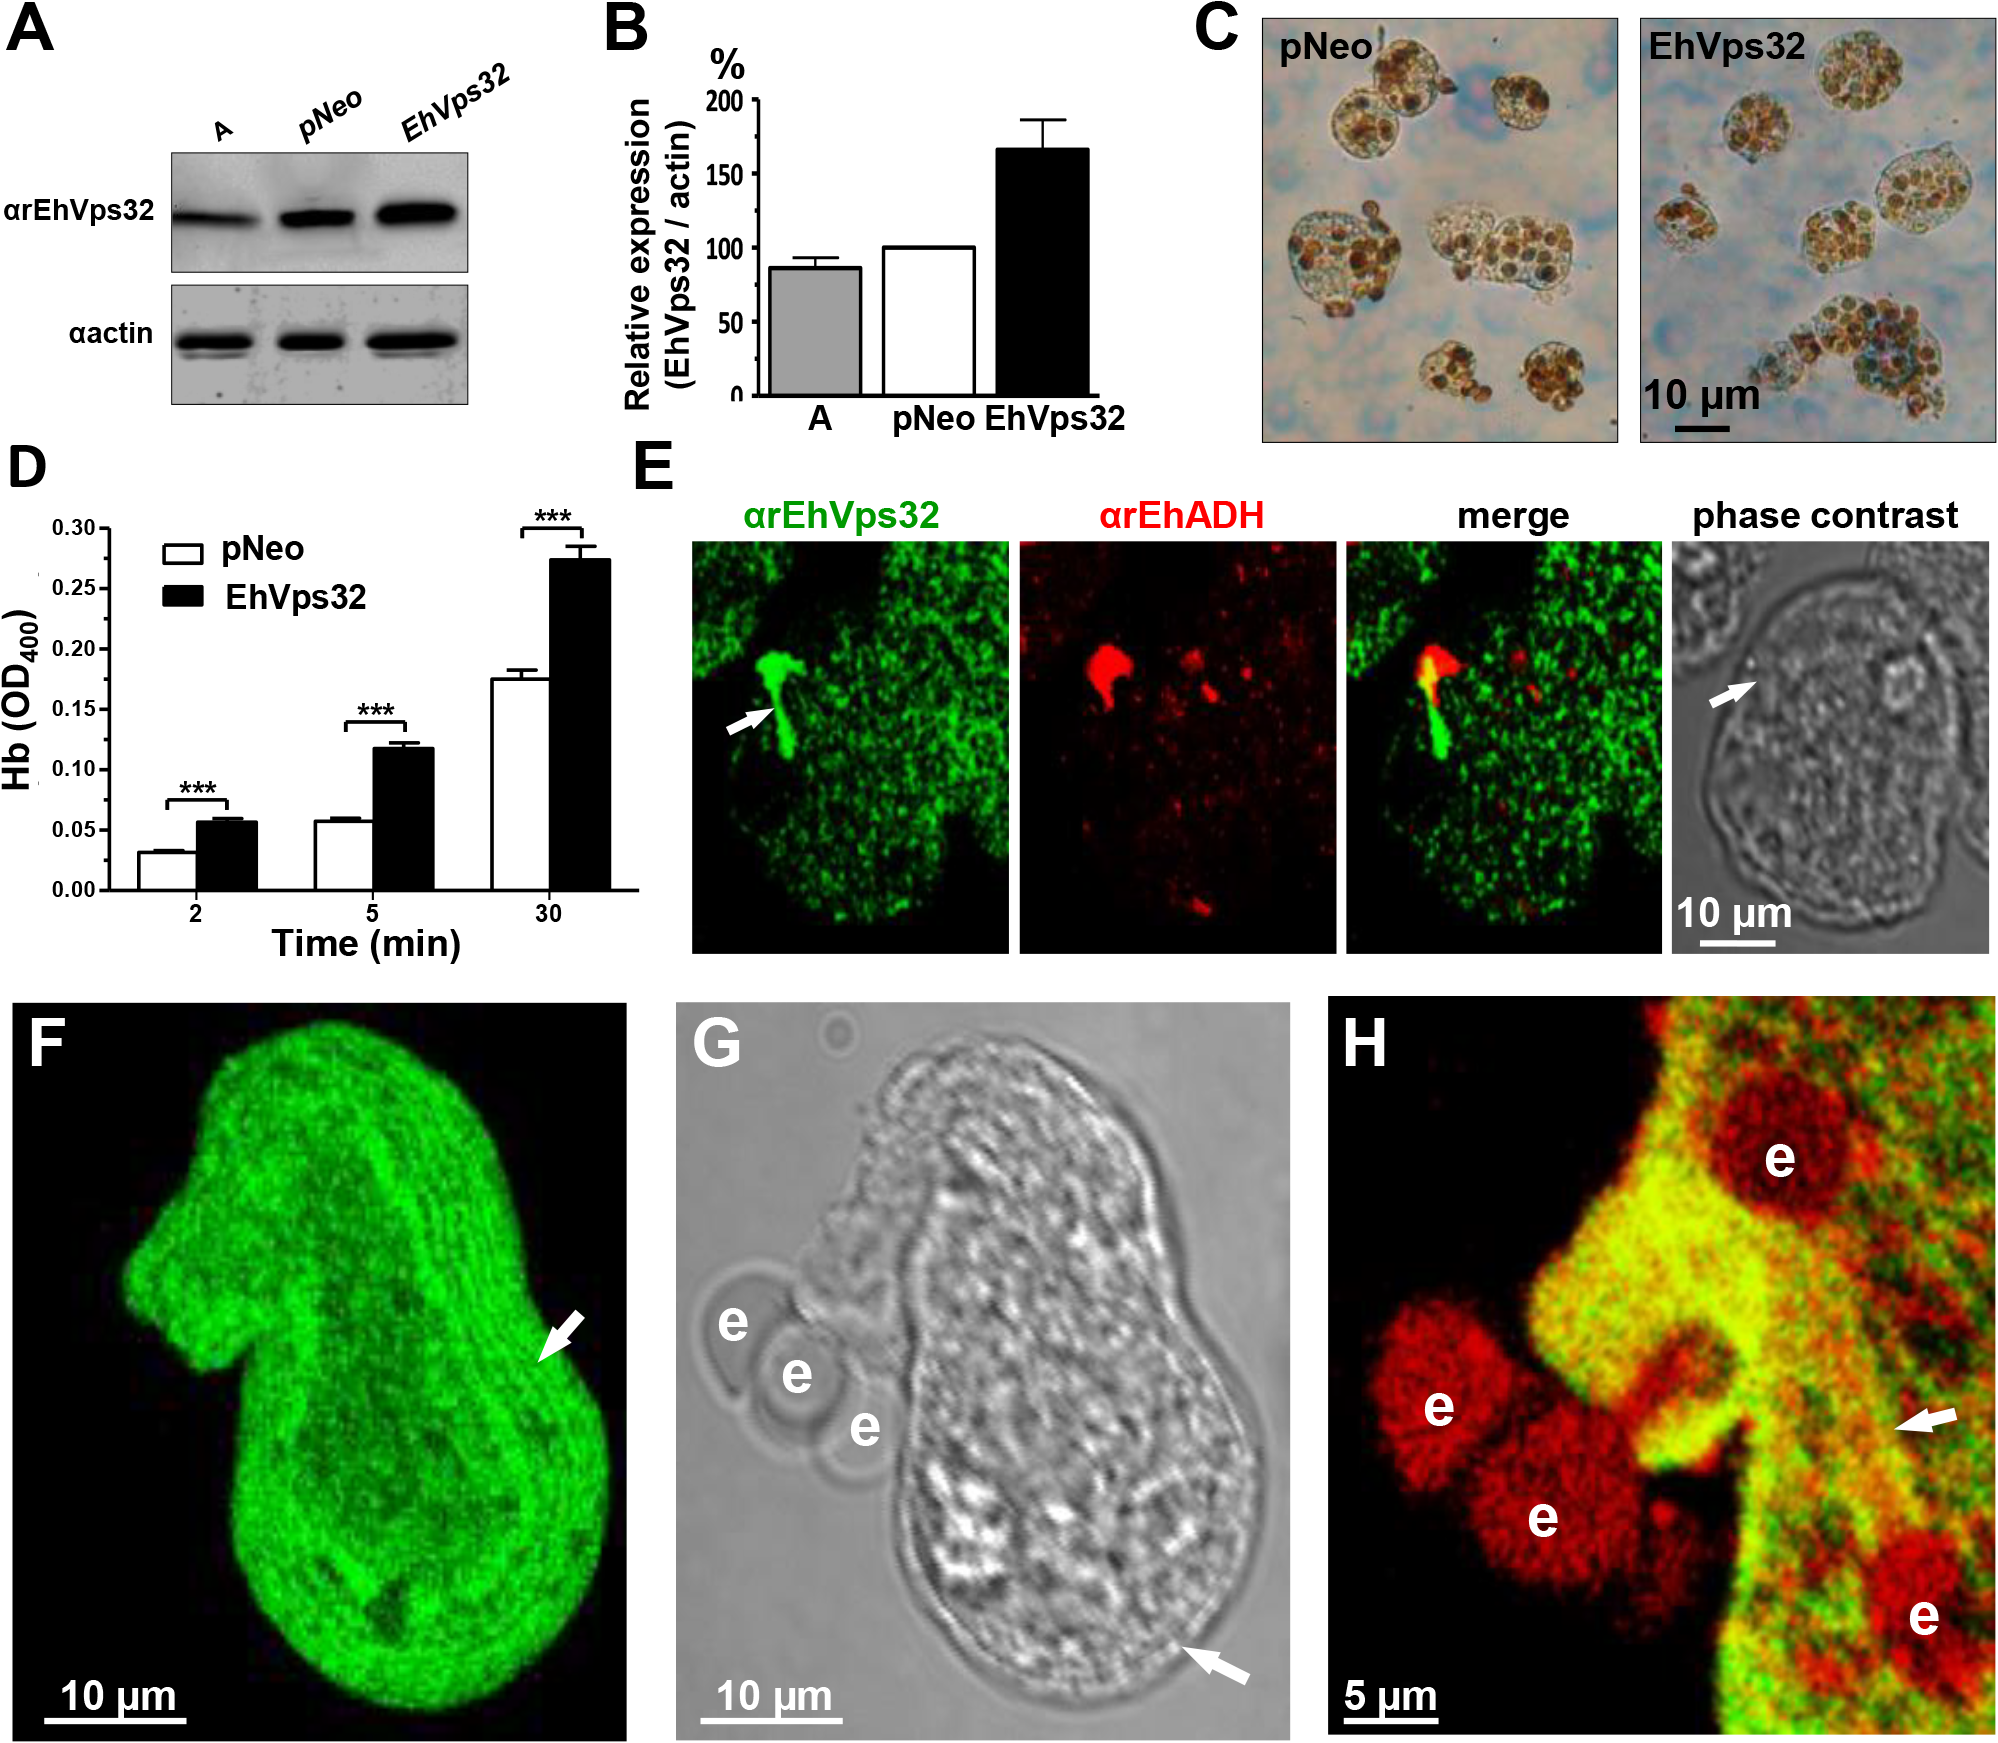 Expression and localization of EhVps32 and rate of erythrophagocytosis in <i>pNeoEhvps32-HA</i> transfected trophozoites.